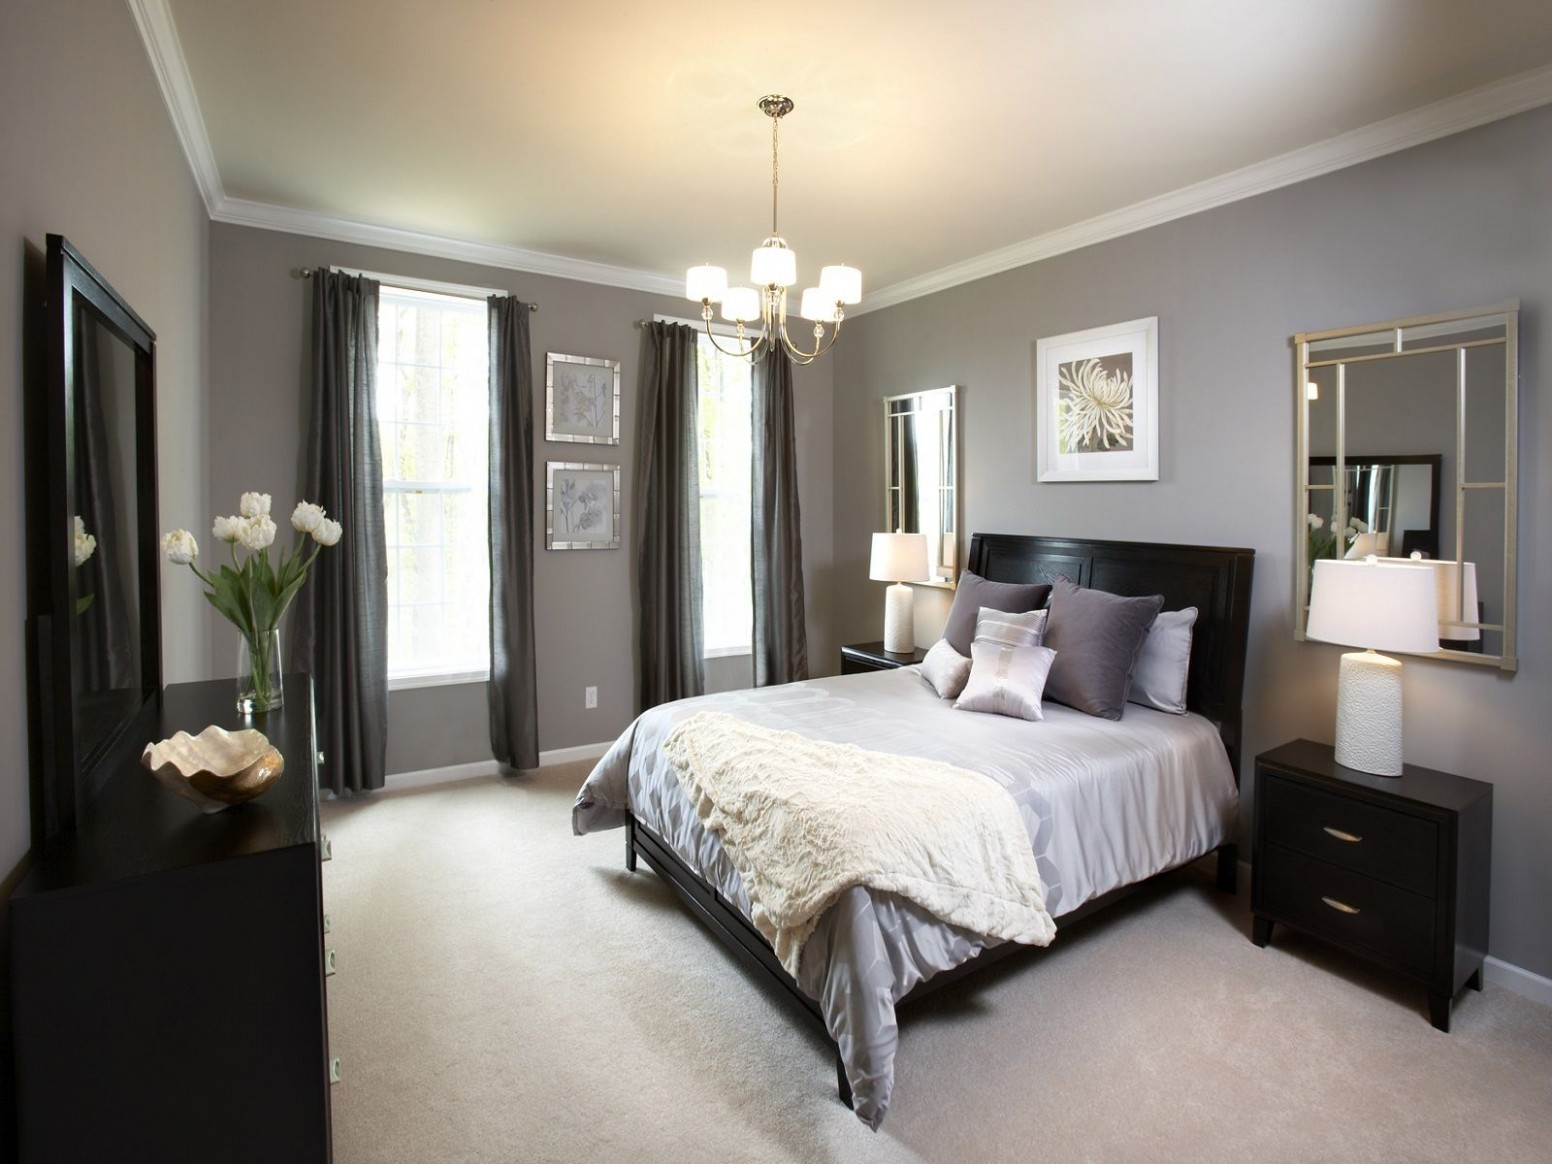 Awesome Bedroom Shade Chandelier Over White Bedding Ideas With  - Bedroom Ideas With Dark Furniture